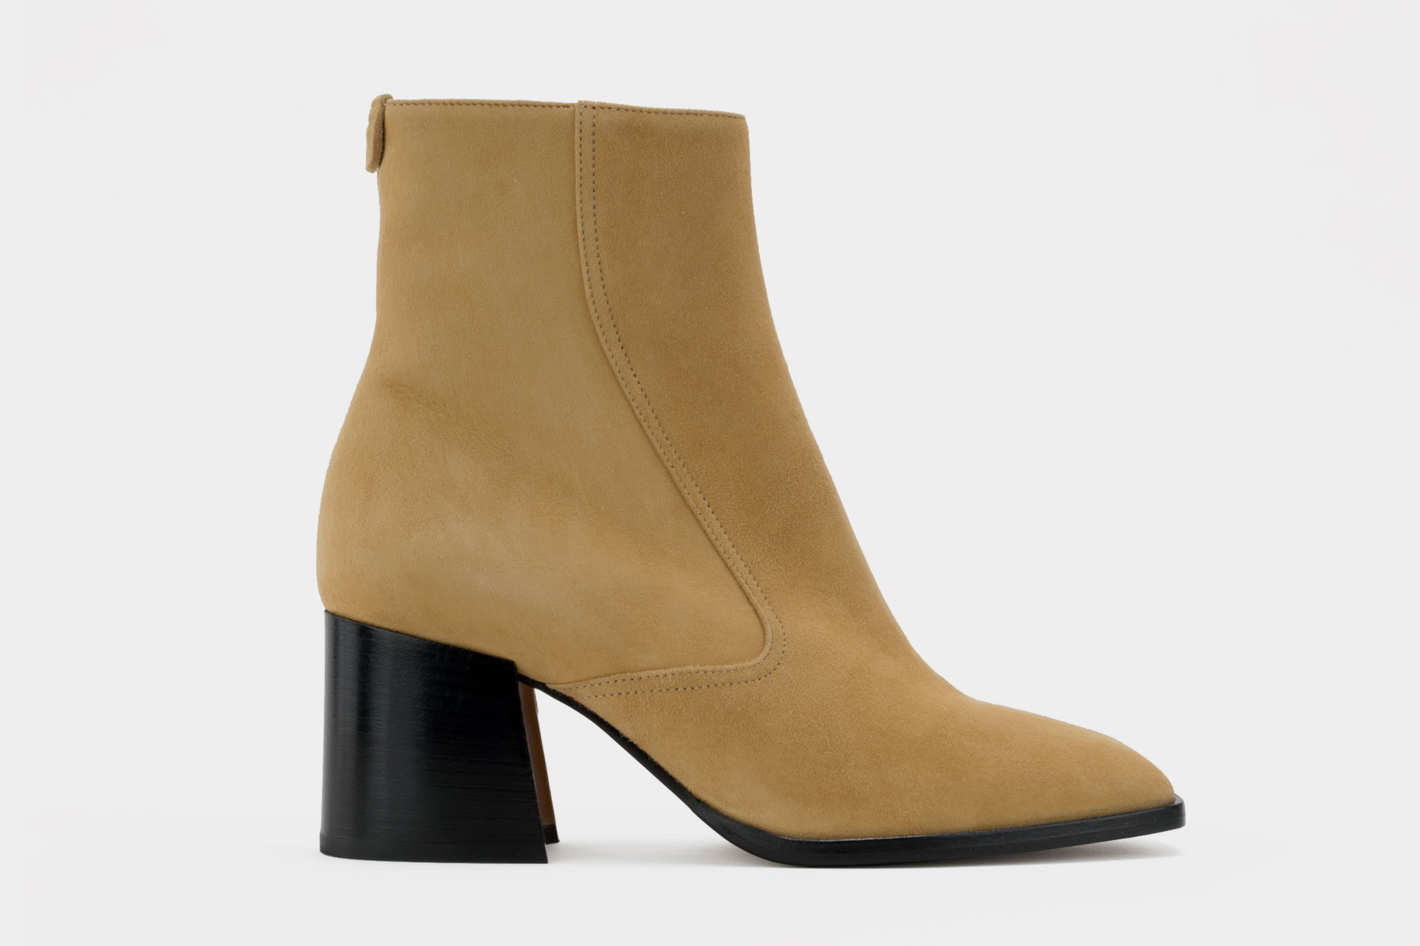 Jules boots in flax suede